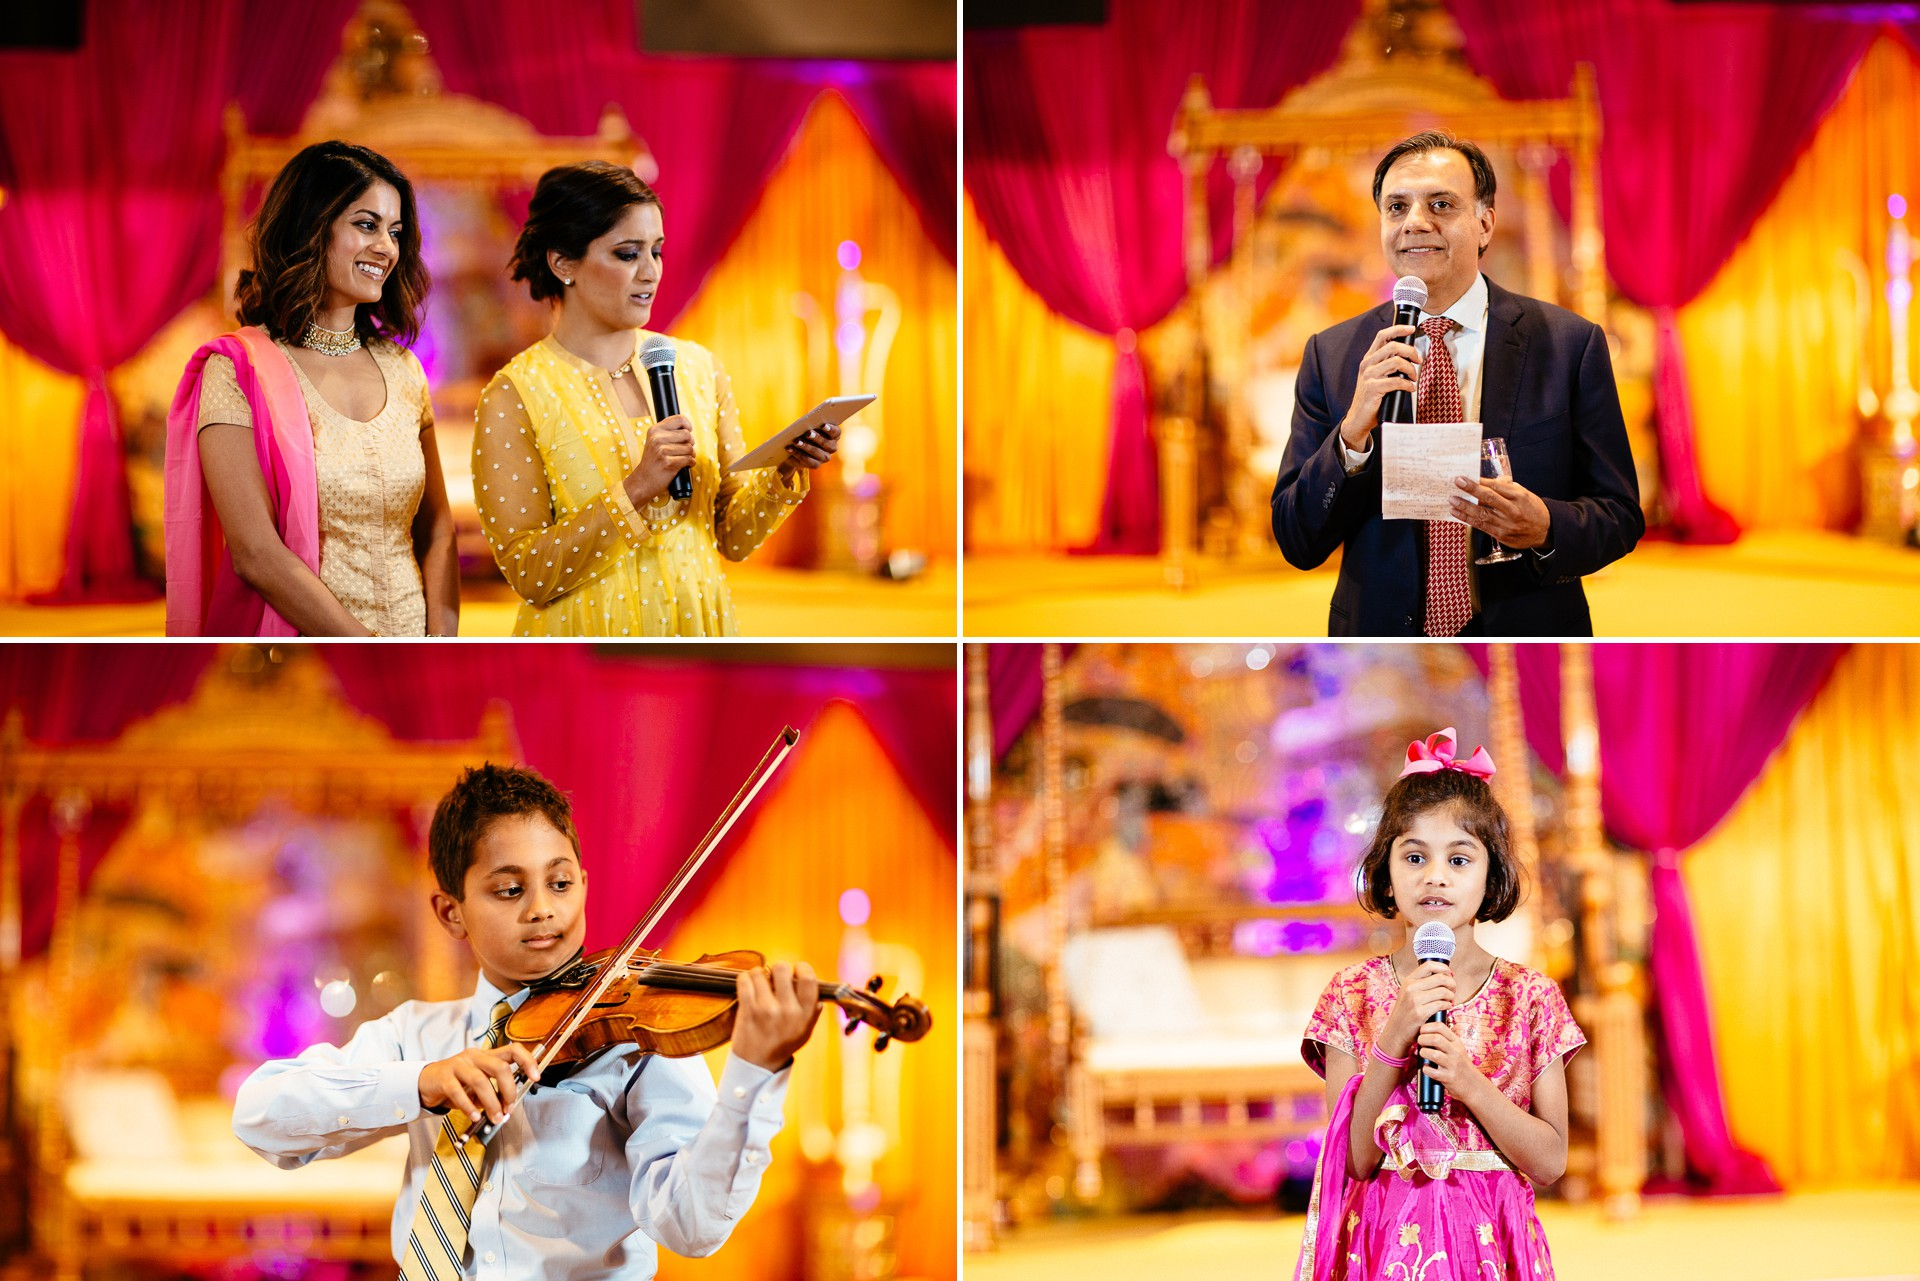 Indian Wedding Photographer in Cleveland at the Westin Hotel 14.jpg